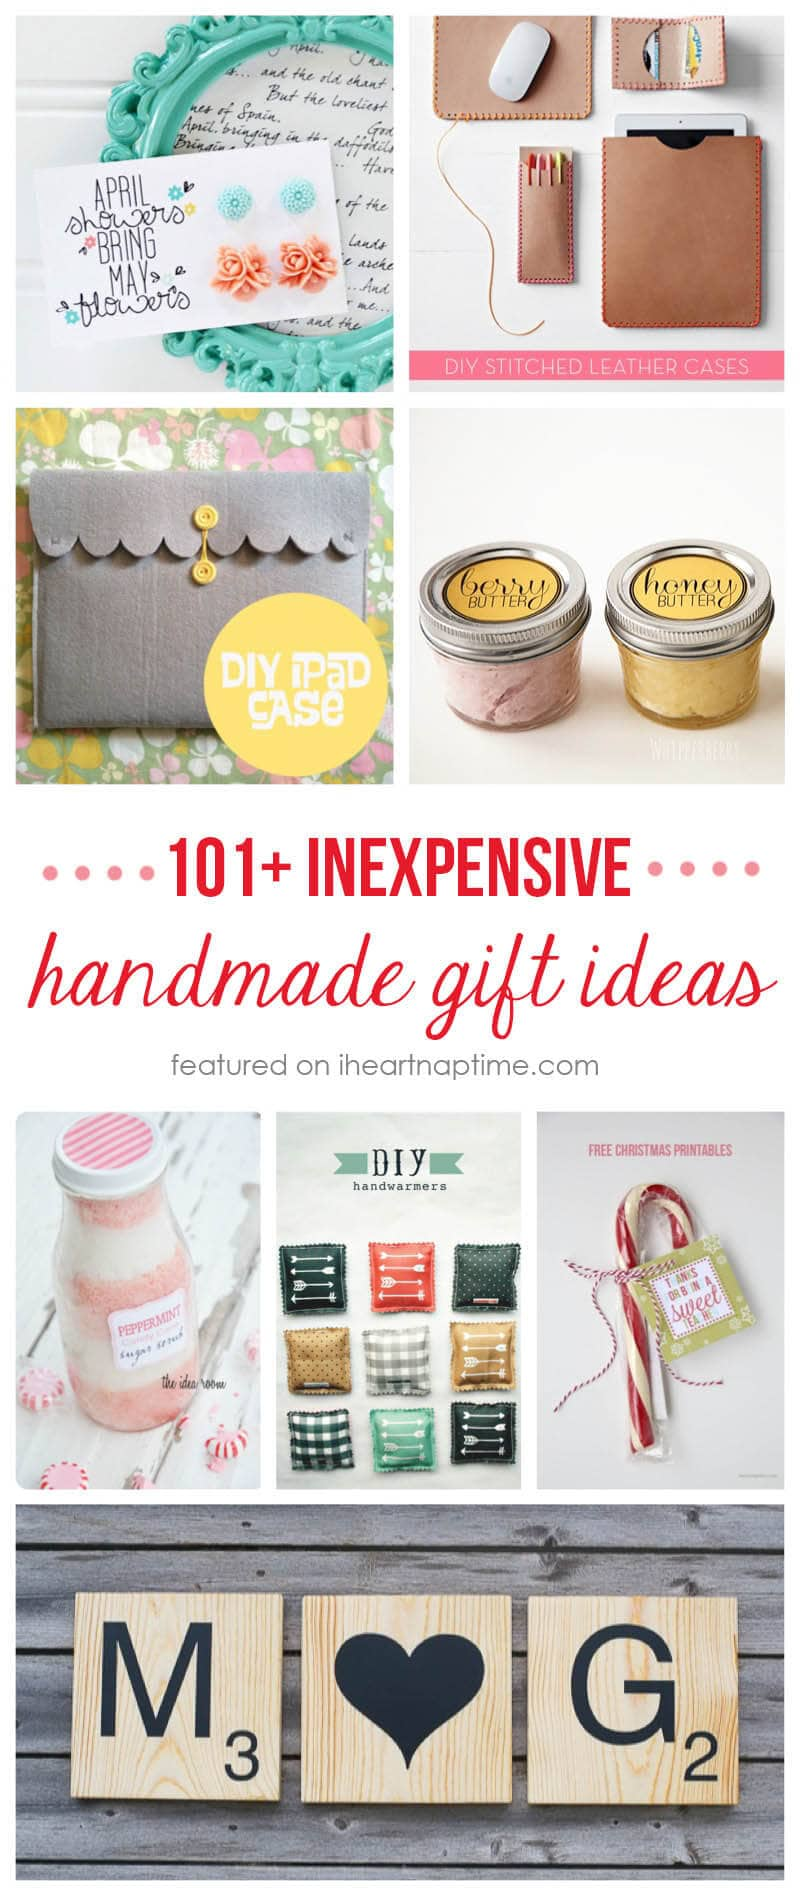 Exceptional Easy Craft Ideas For Christmas Gifts Part - 14: 101+ Inexpensive Handmade Christmas Gifts On Iheartnaptime.com